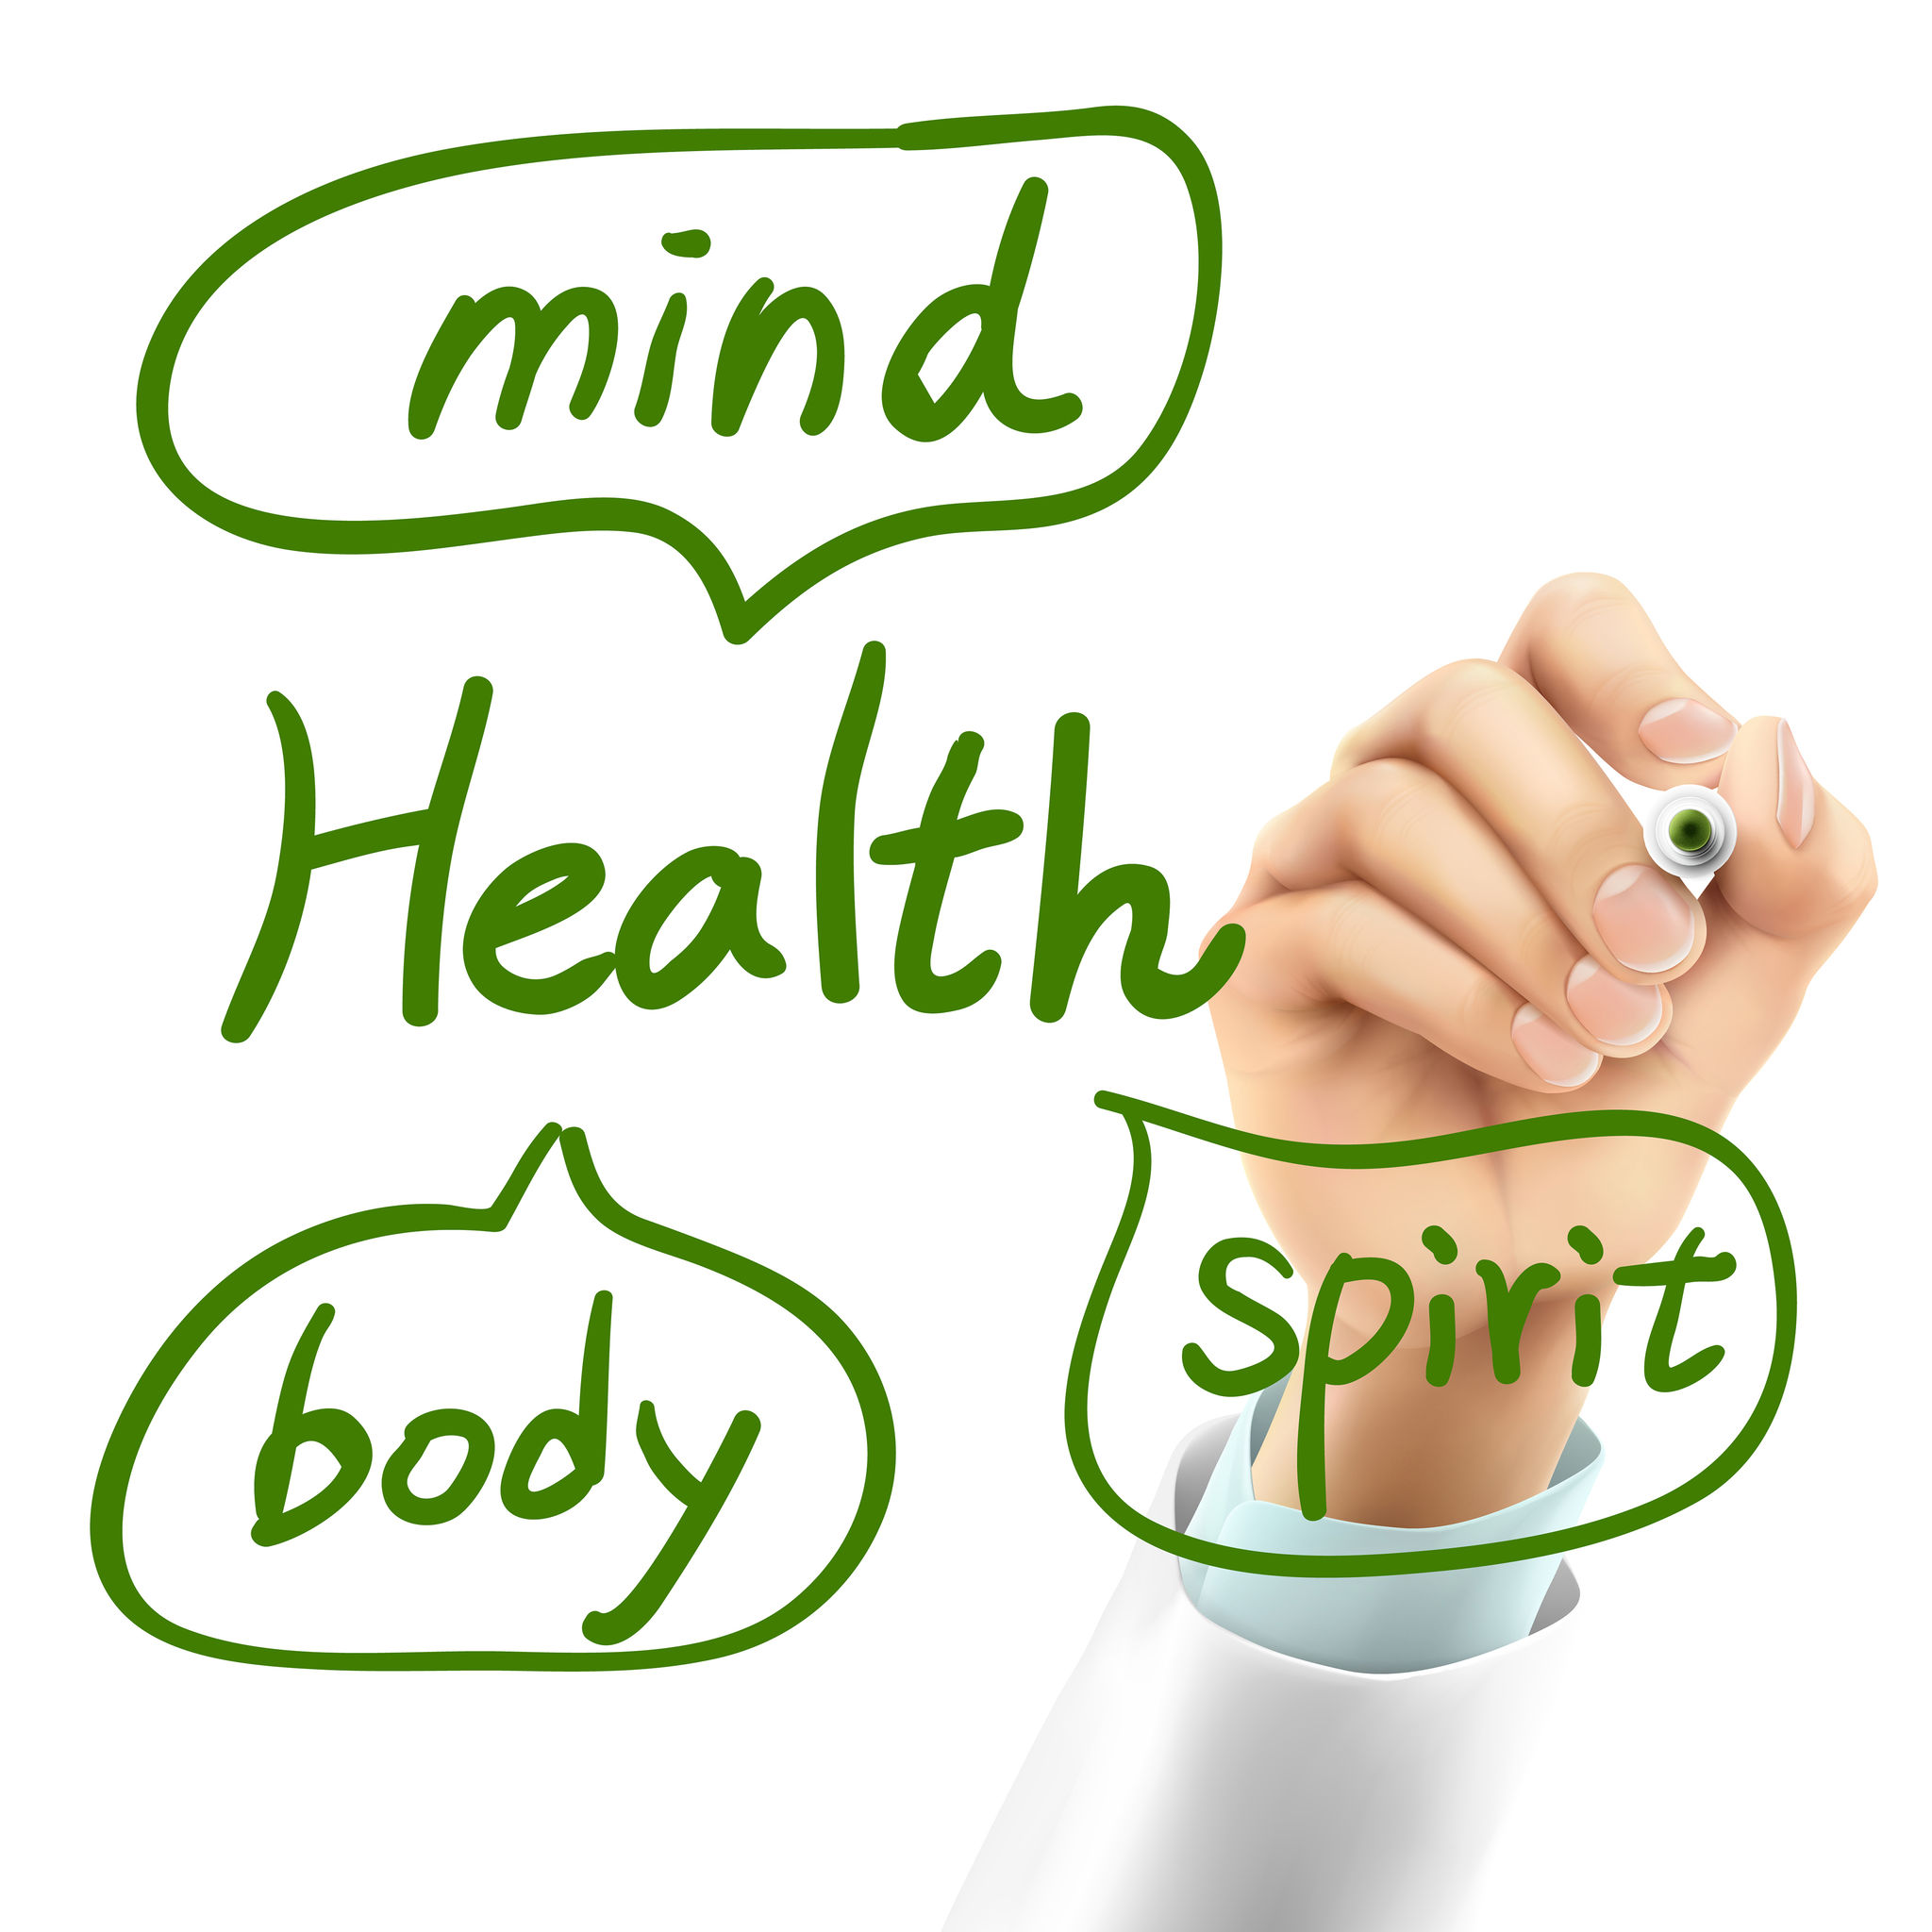 Healthy living through Health Coaching. https://www.info-on-high-blood-pressure.com/Health-Coaching.html